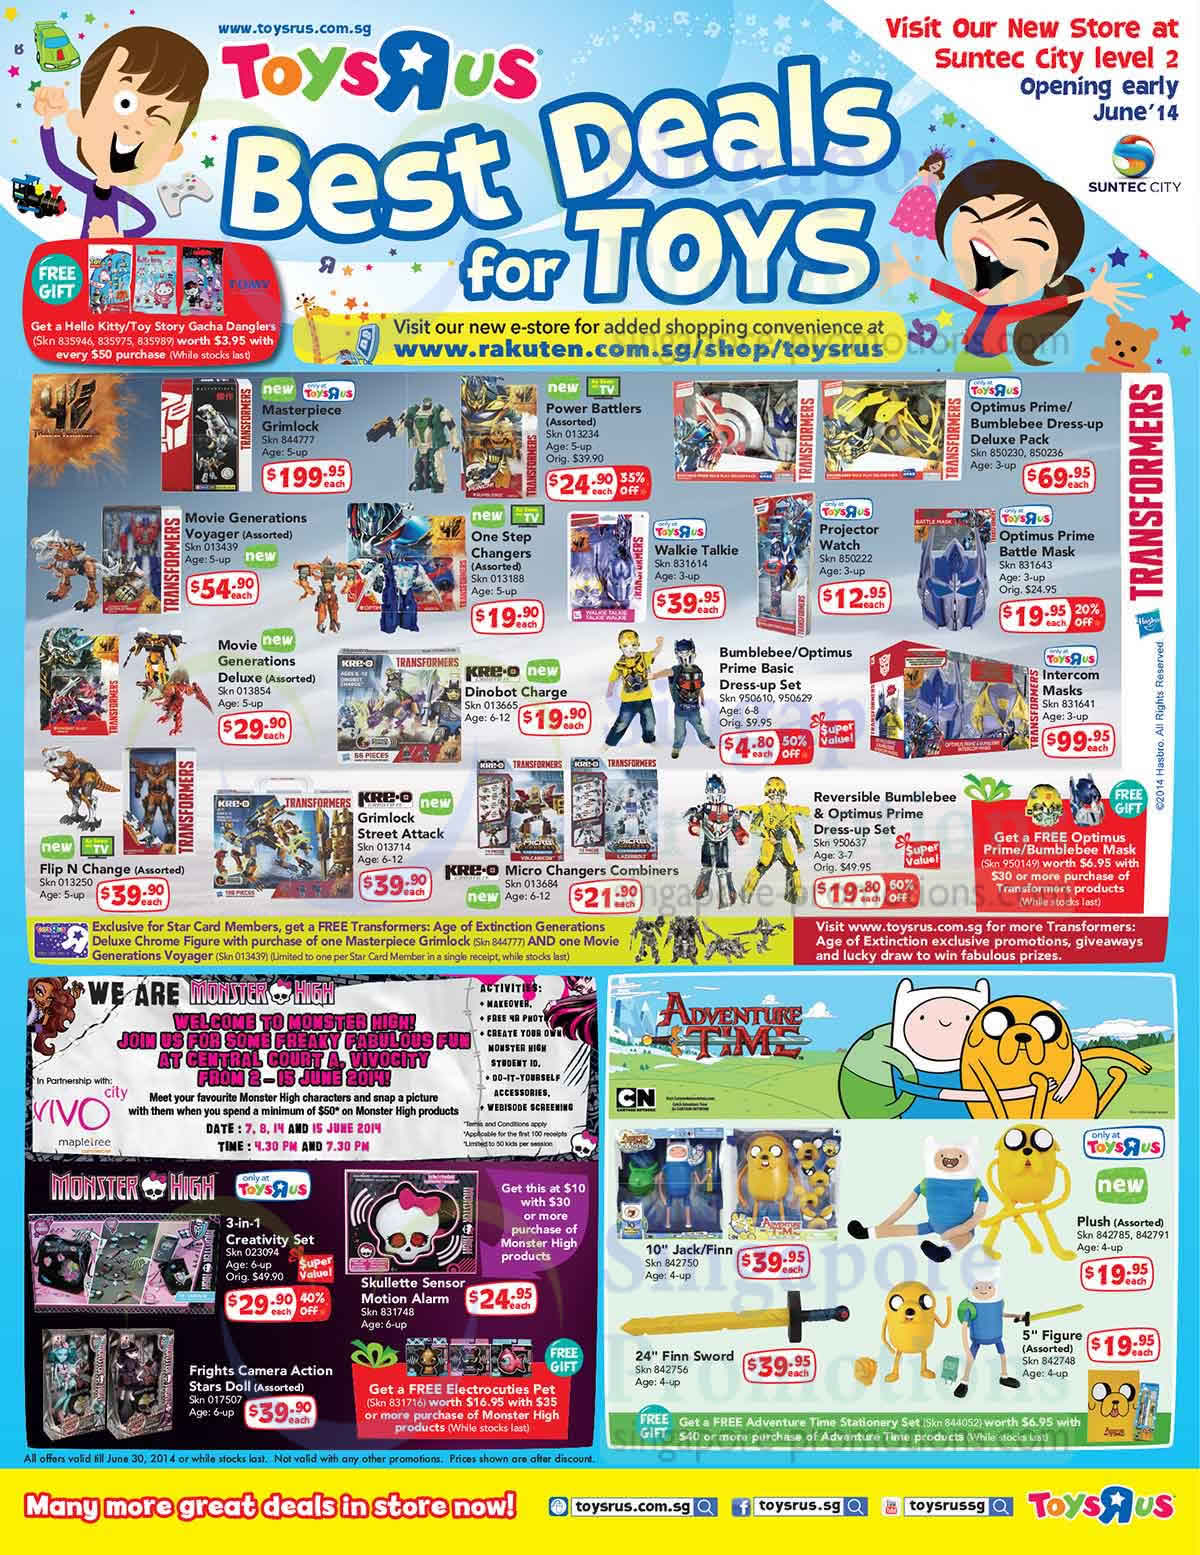 Best Deals for Toys, Transformers, Grimlock, Power Battlers, Jack Finn, Monster High